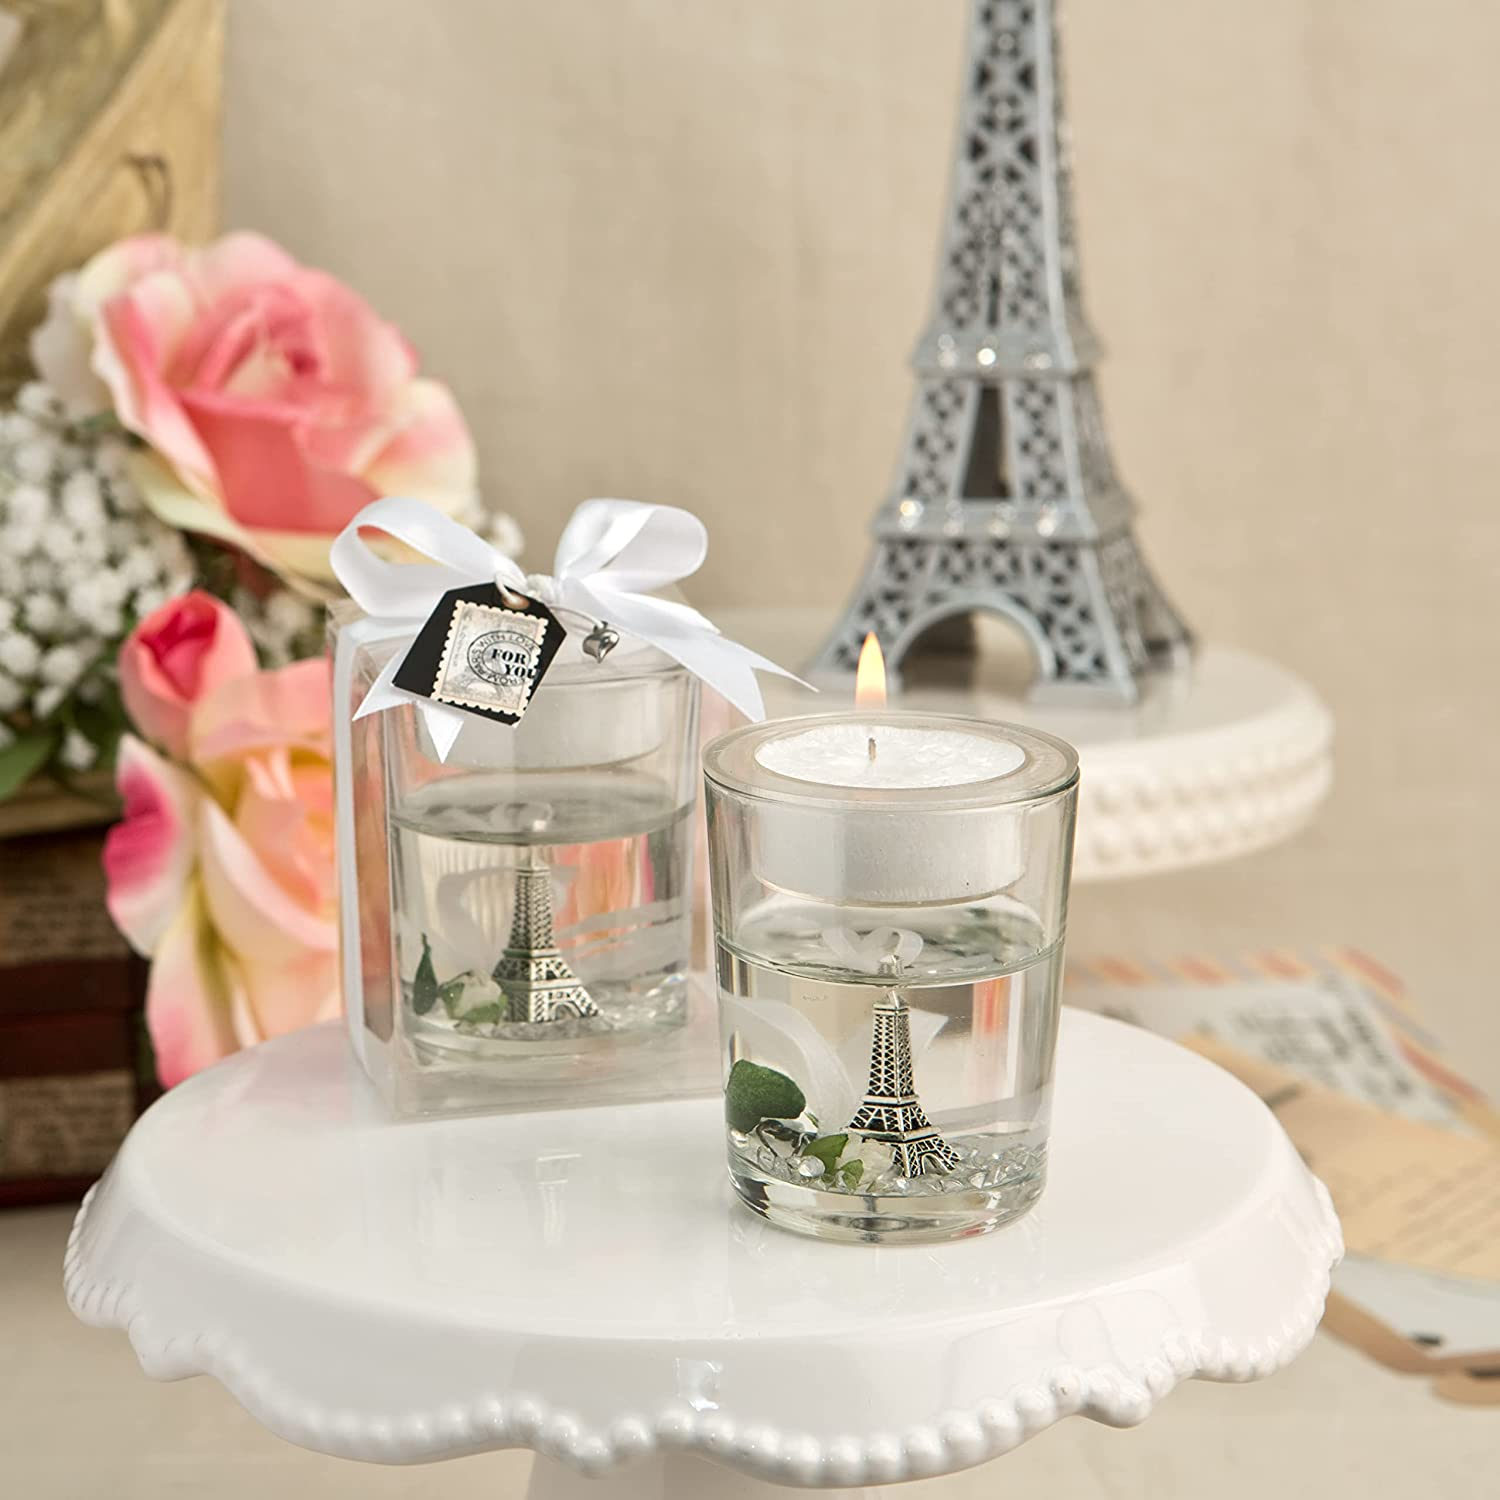 FASHIONCRAFT Eiffel Tower Gel Candle Super sale with White Holder Product and Rose